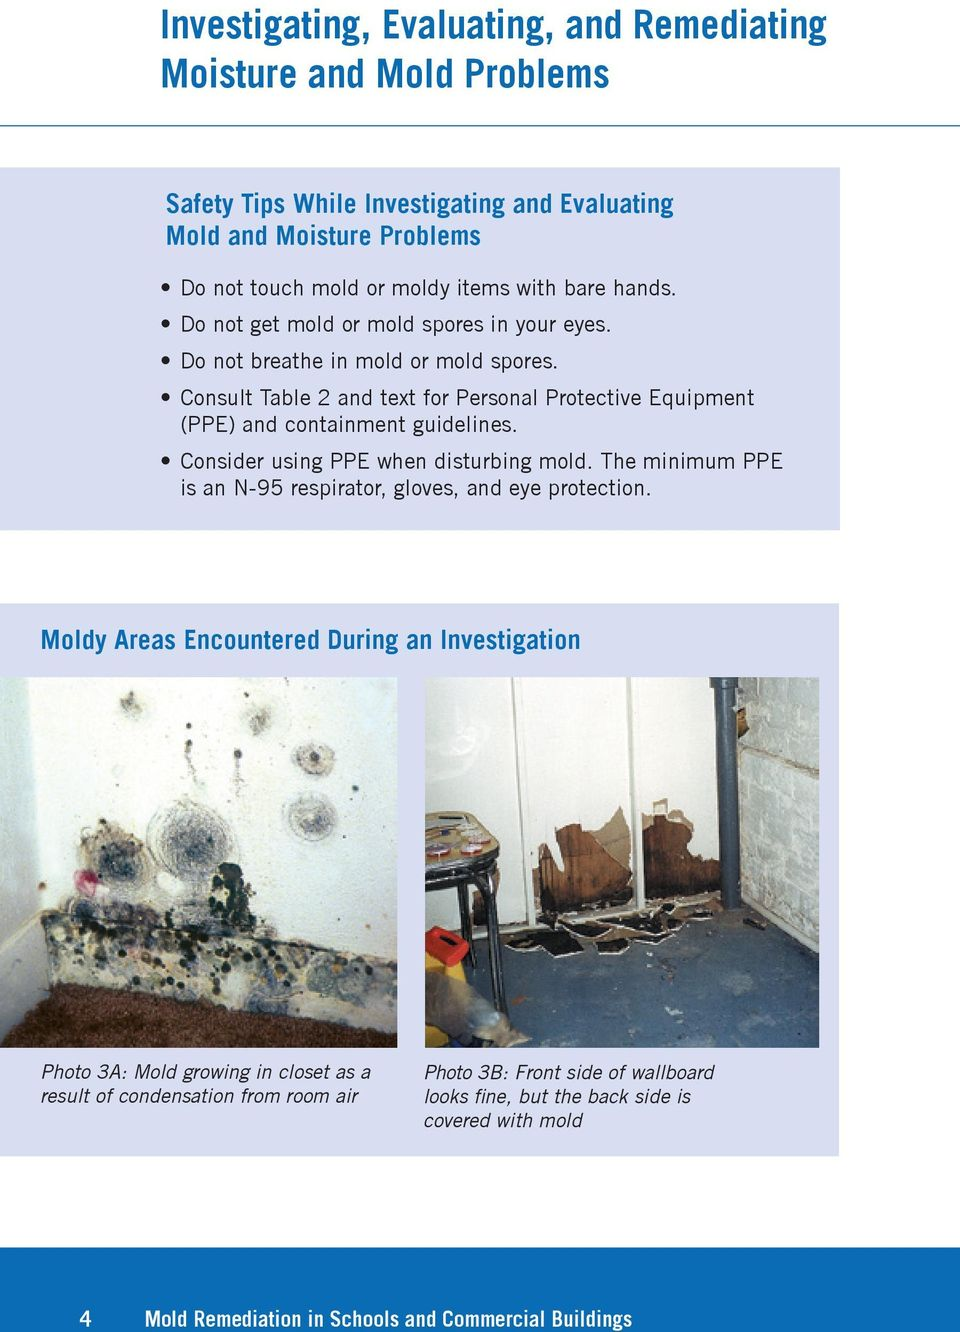 Consult Table 2 and text for Personal Protective Equipment (PPE) and containment guidelines. Consider using PPE when disturbing mold.